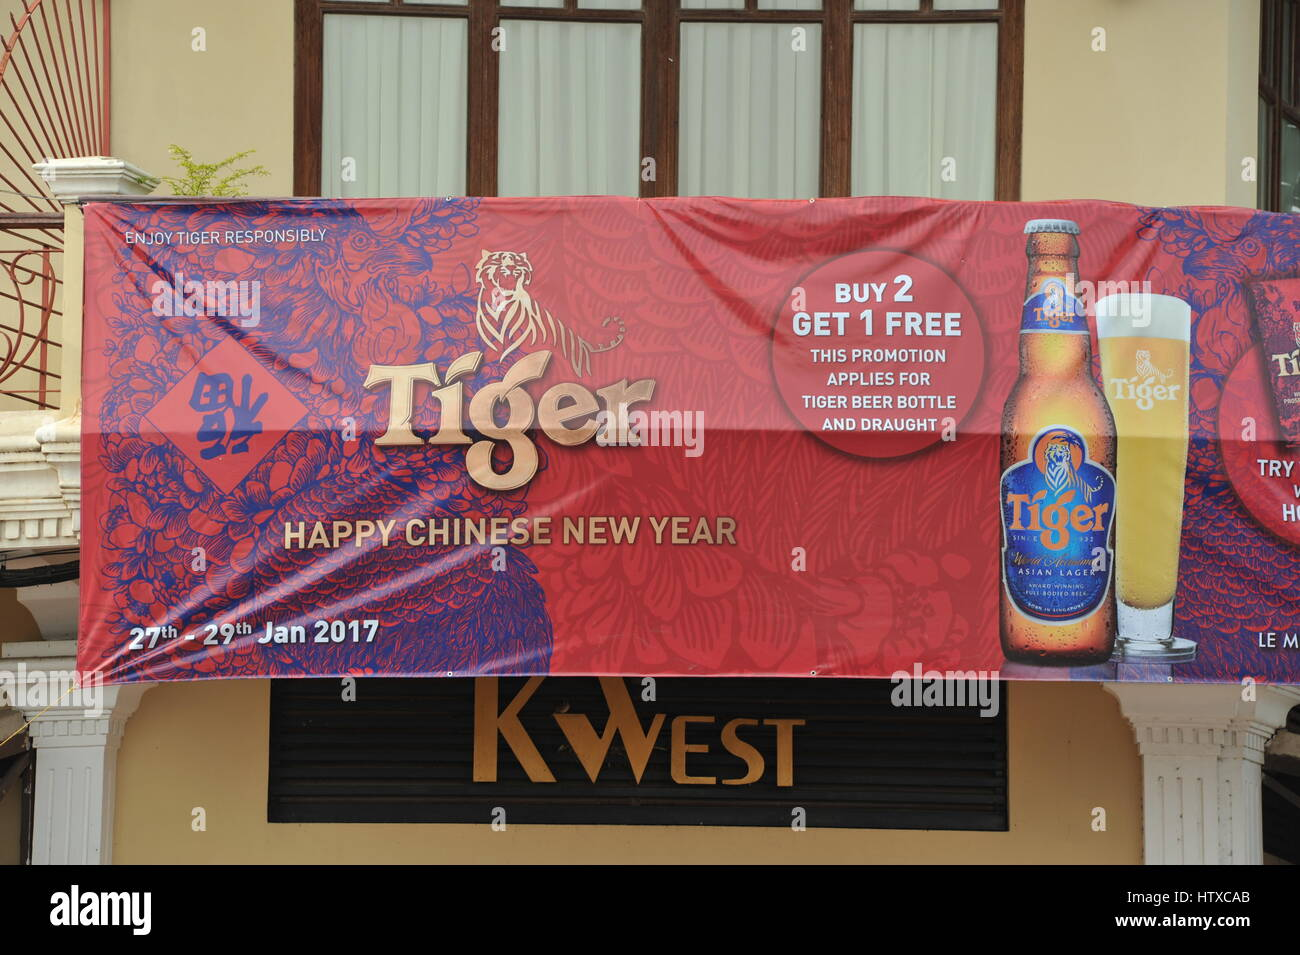 happy chinese new year promotional banner by tiger beer on the riverside phnom penh cambodia credit kraig lieb